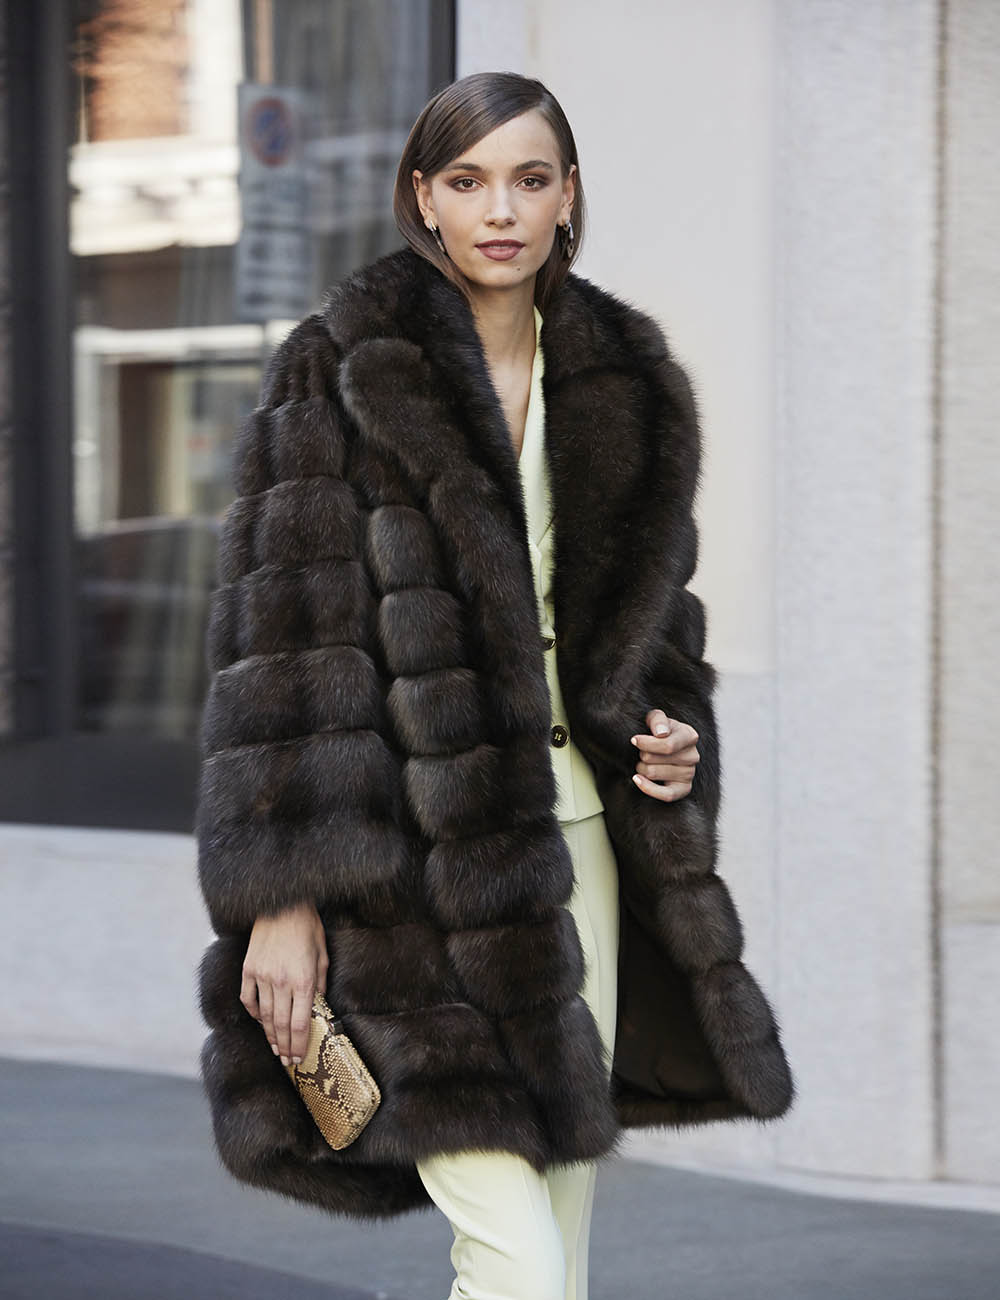 Luxury Black Sable Coat, How Much Is A Sable Coat